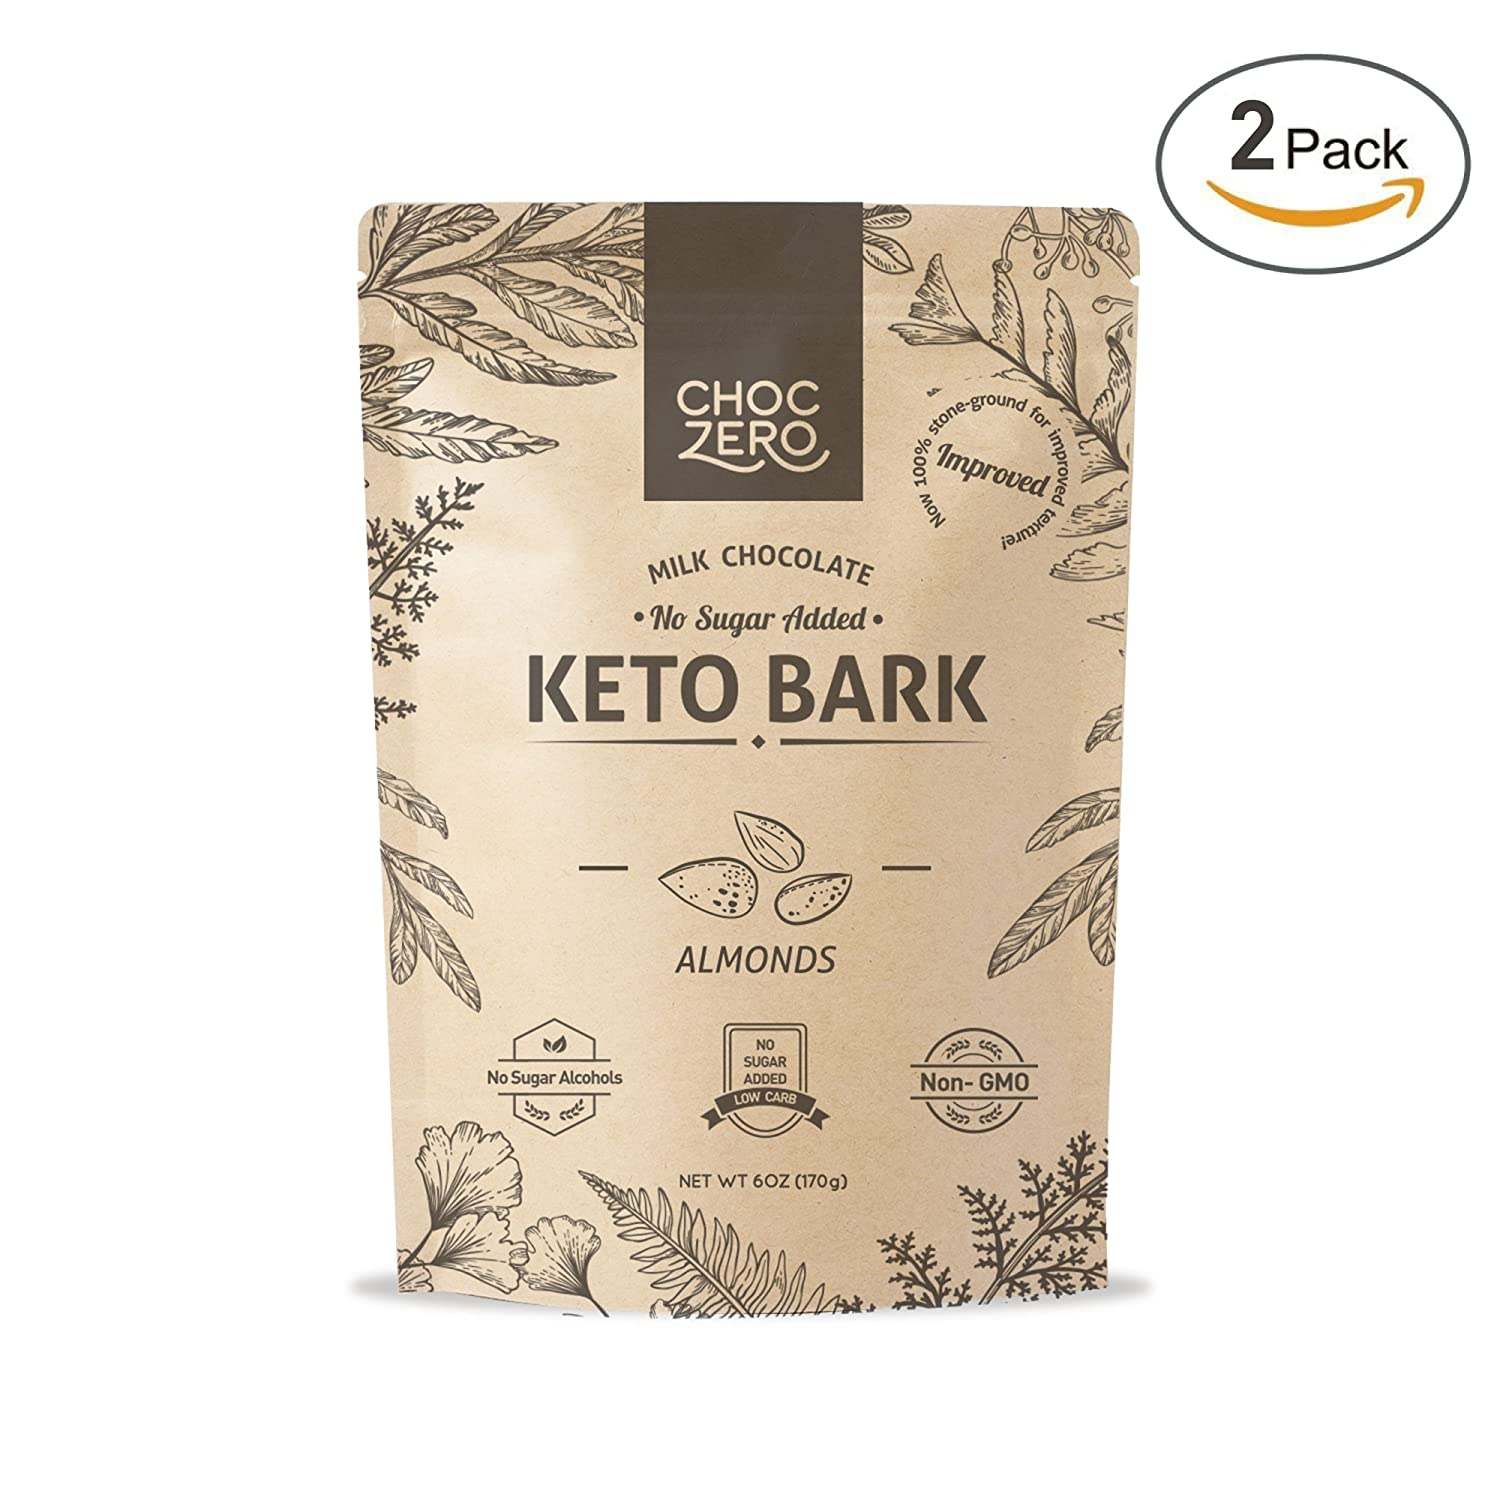 ChocZero's Keto Bark, Milk Chocolate Almonds,while rather yet 100% Stone-Ground, No Added Sugar, Low Carb, No Sugar Alcohols, Non-GMO